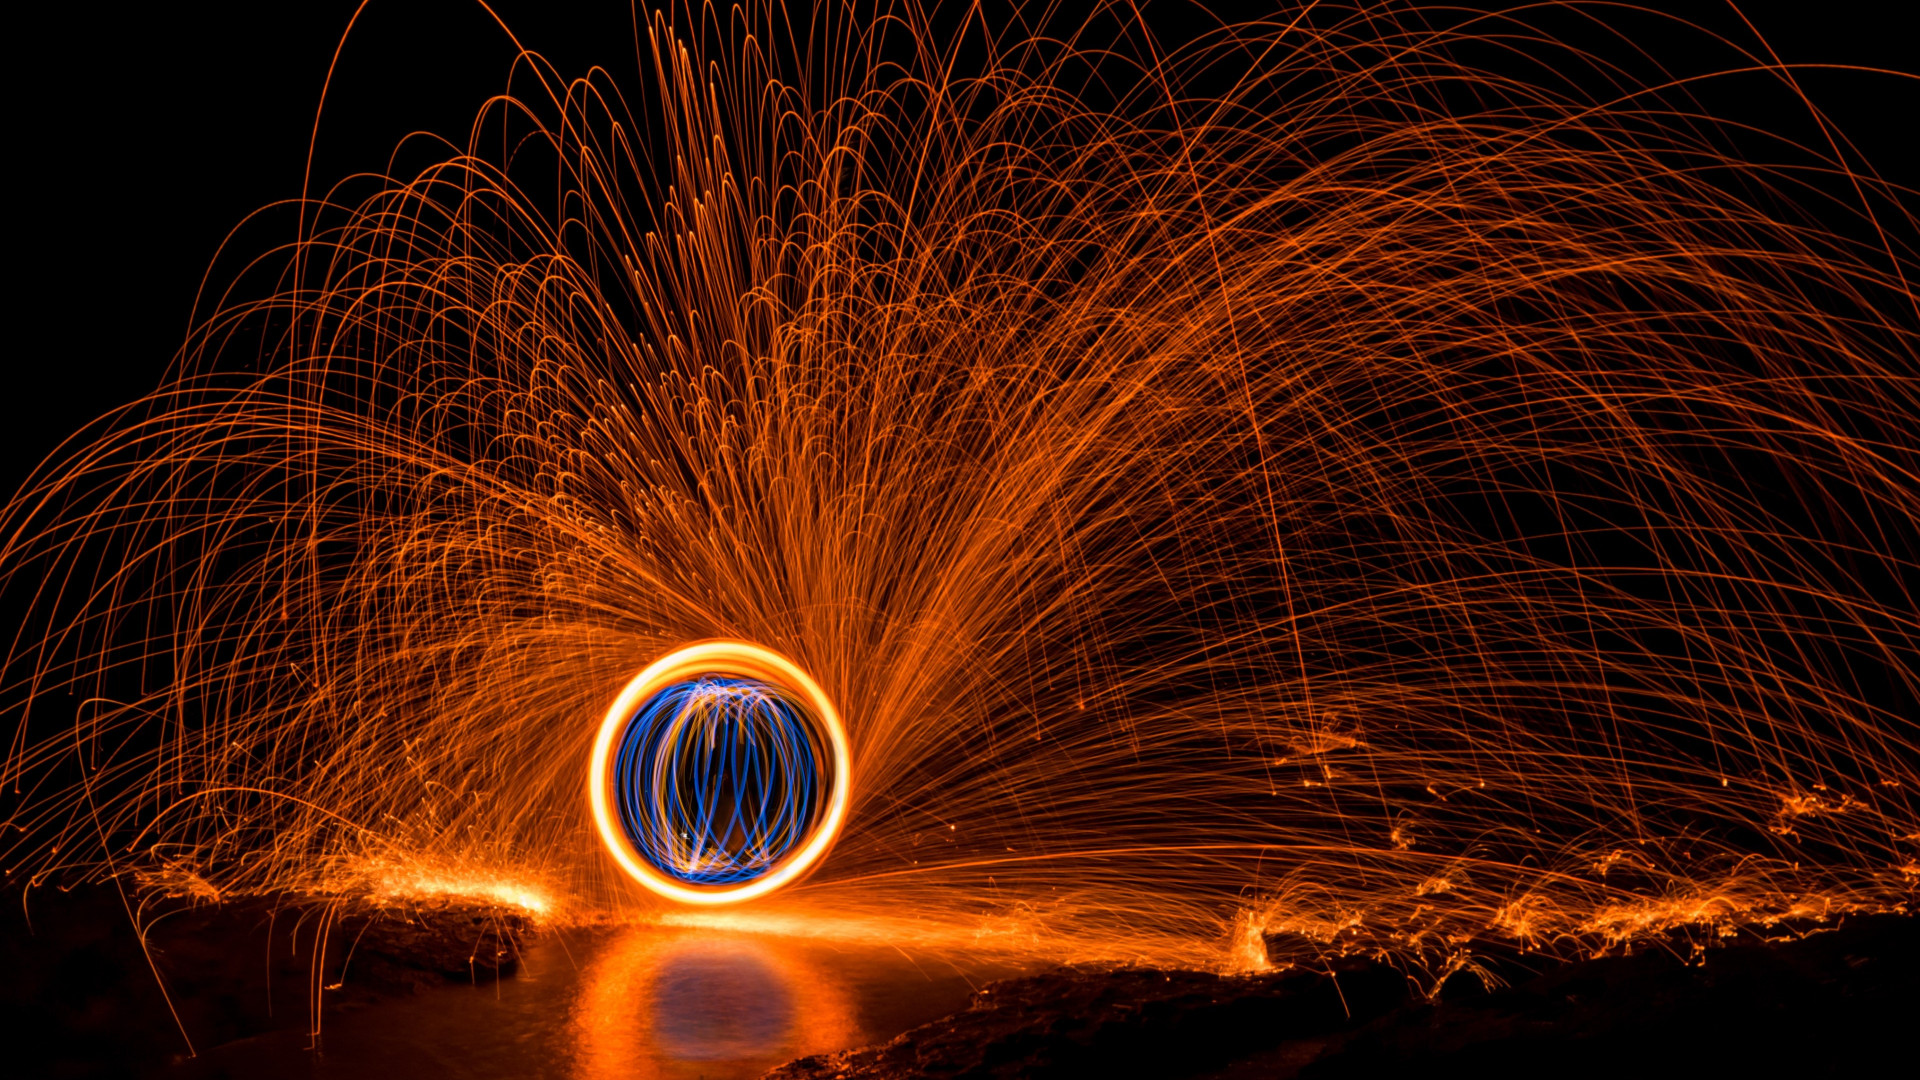 Hot light painting wallpaper 1920x1080